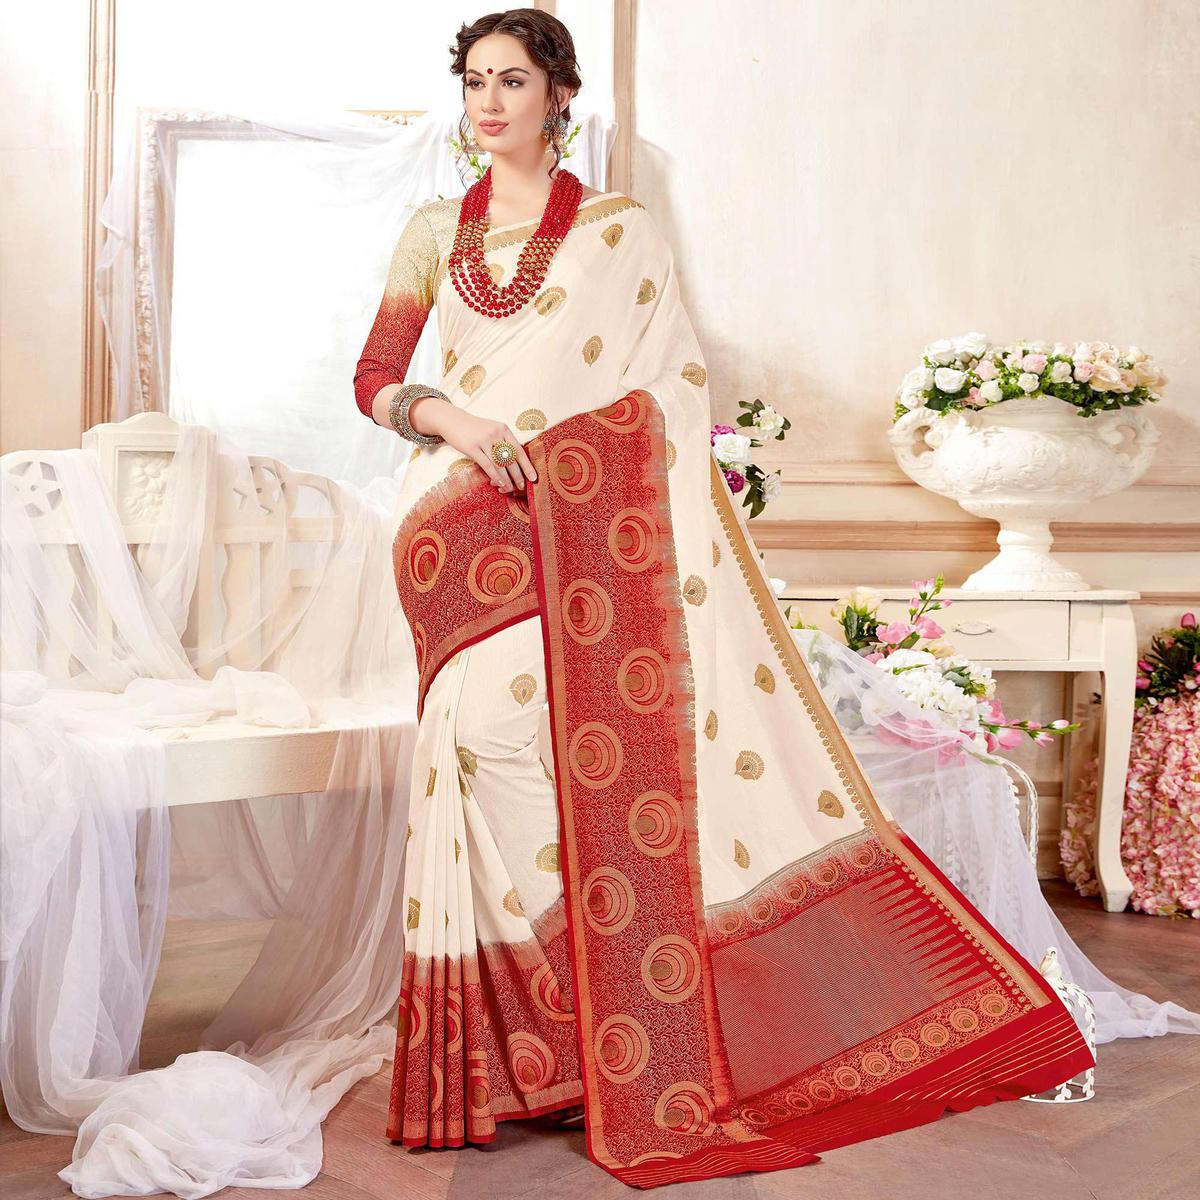 Exceptional Red Colored Festive Wear Art Silk Saree With Matching Blouse.